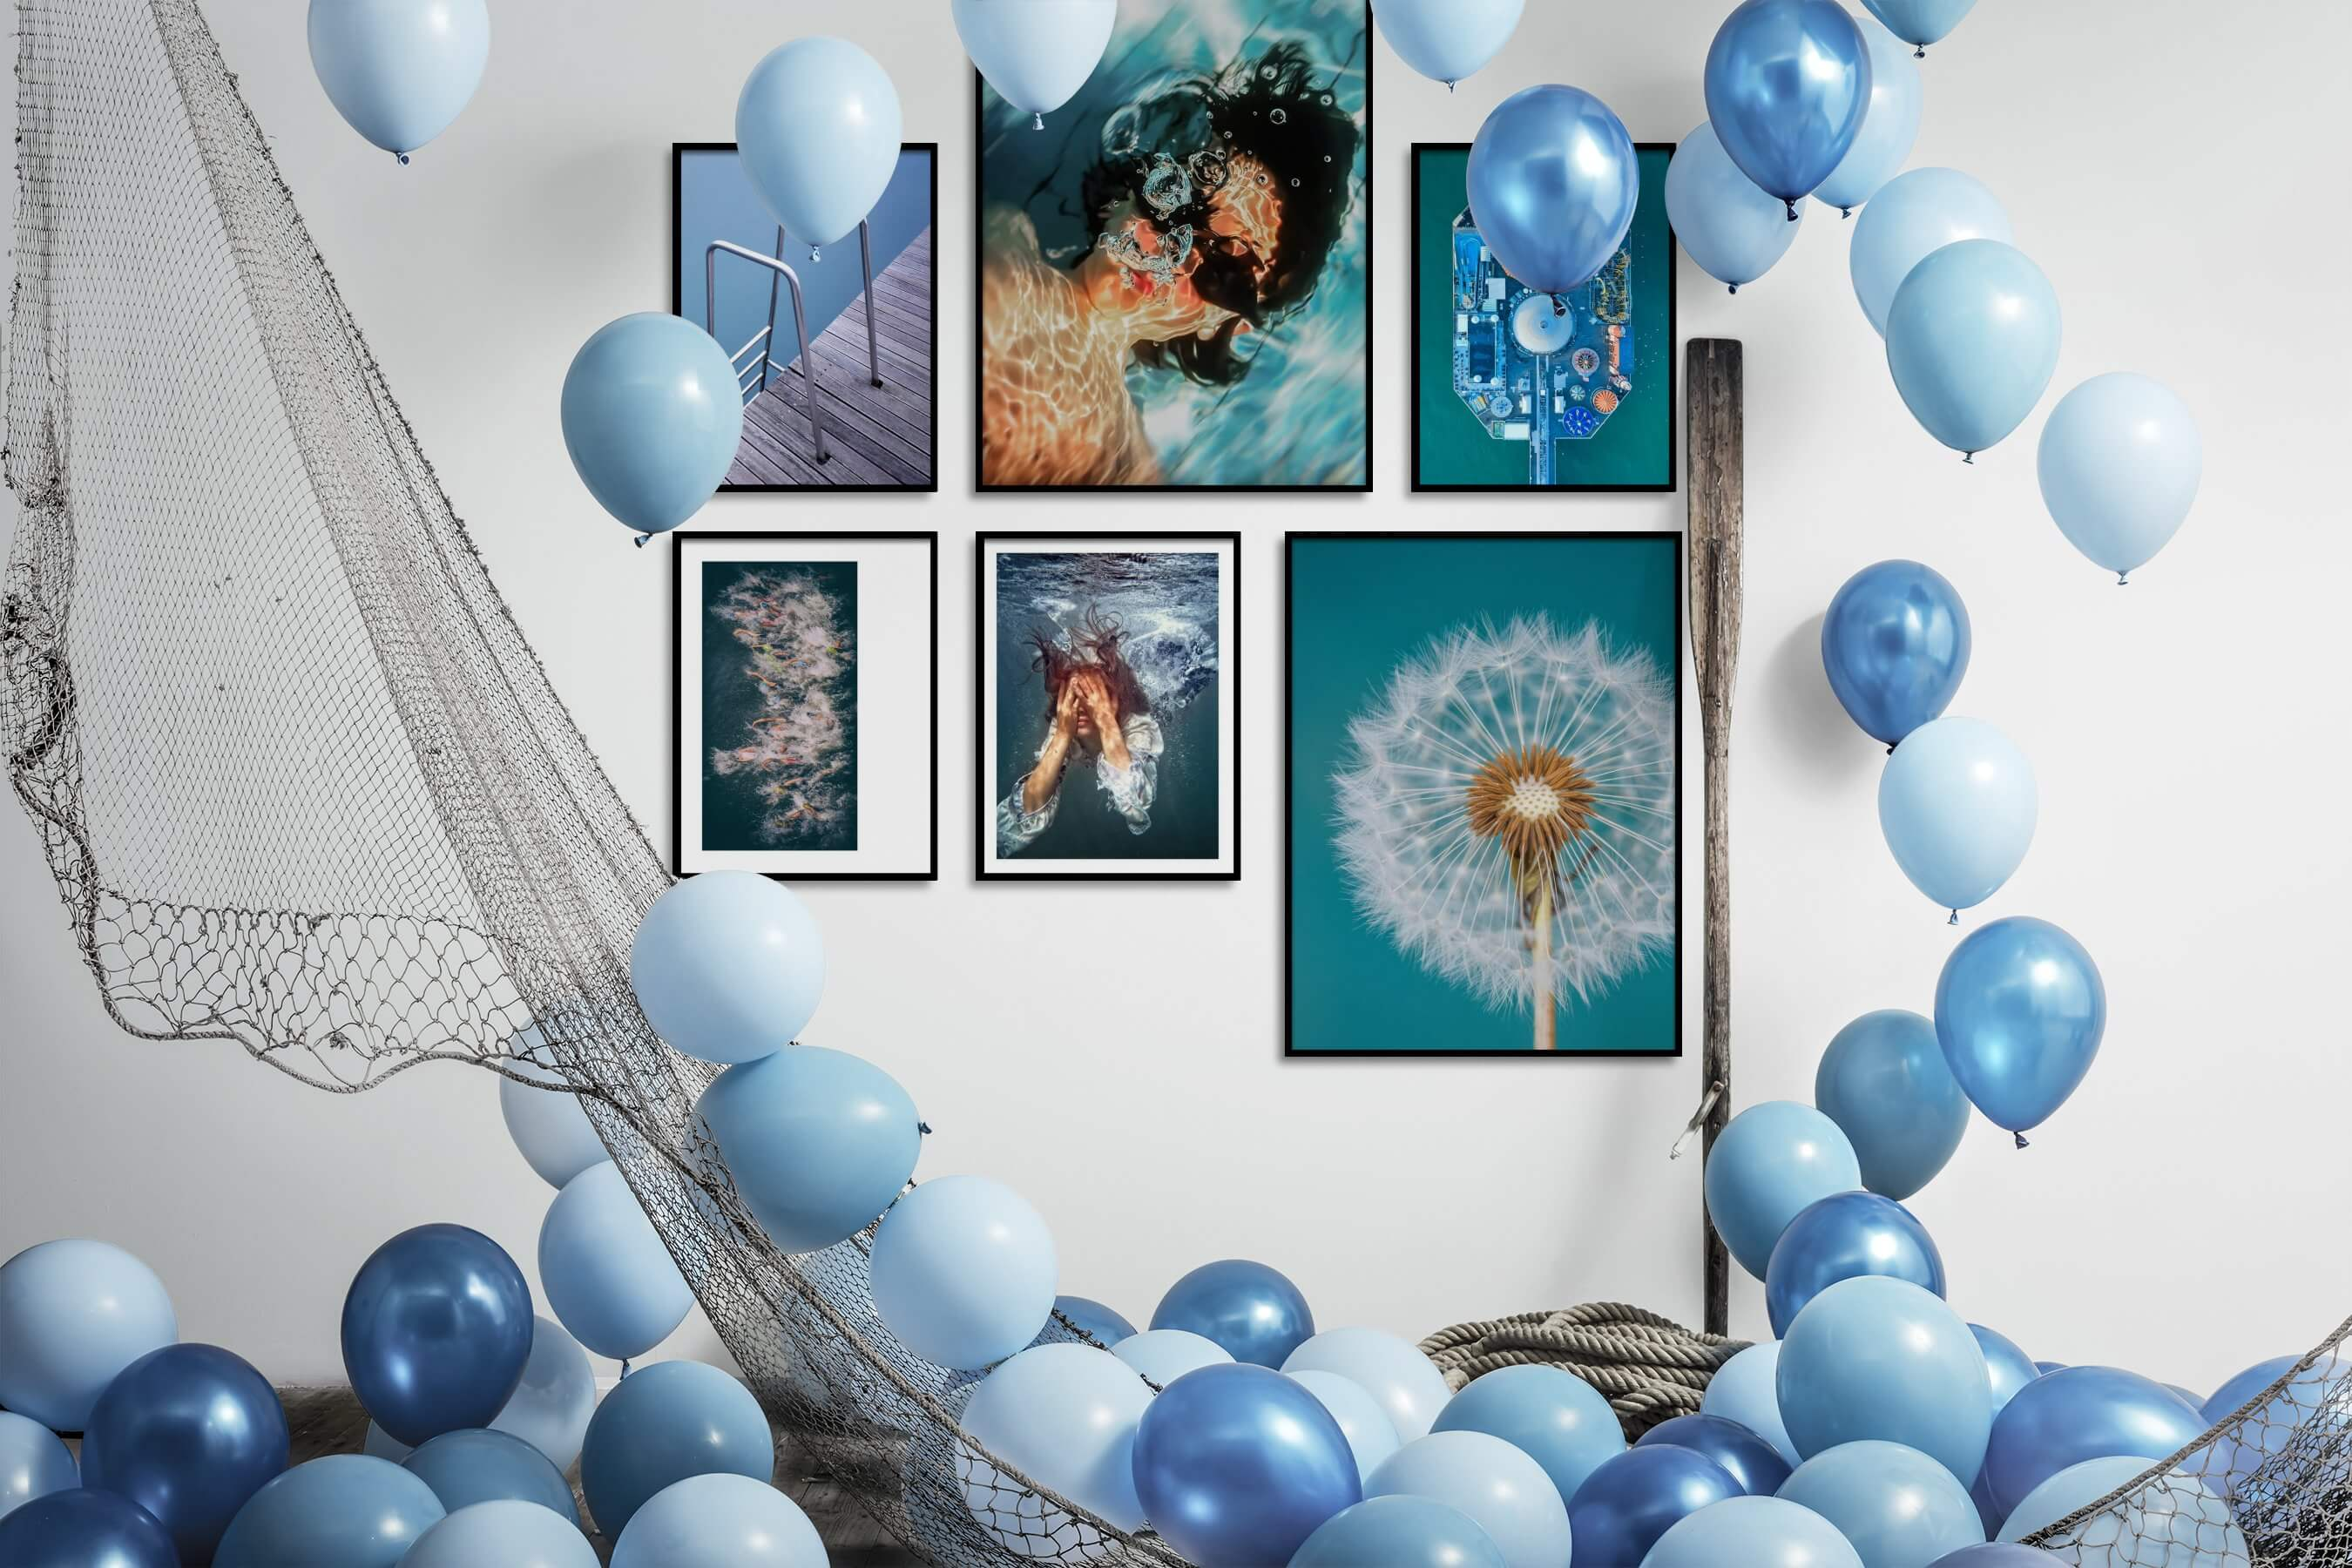 Gallery wall idea with six framed pictures arranged on a wall depicting For the Moderate, Beach & Water, Fashion & Beauty, For the Minimalist, Flowers & Plants, and Mindfulness